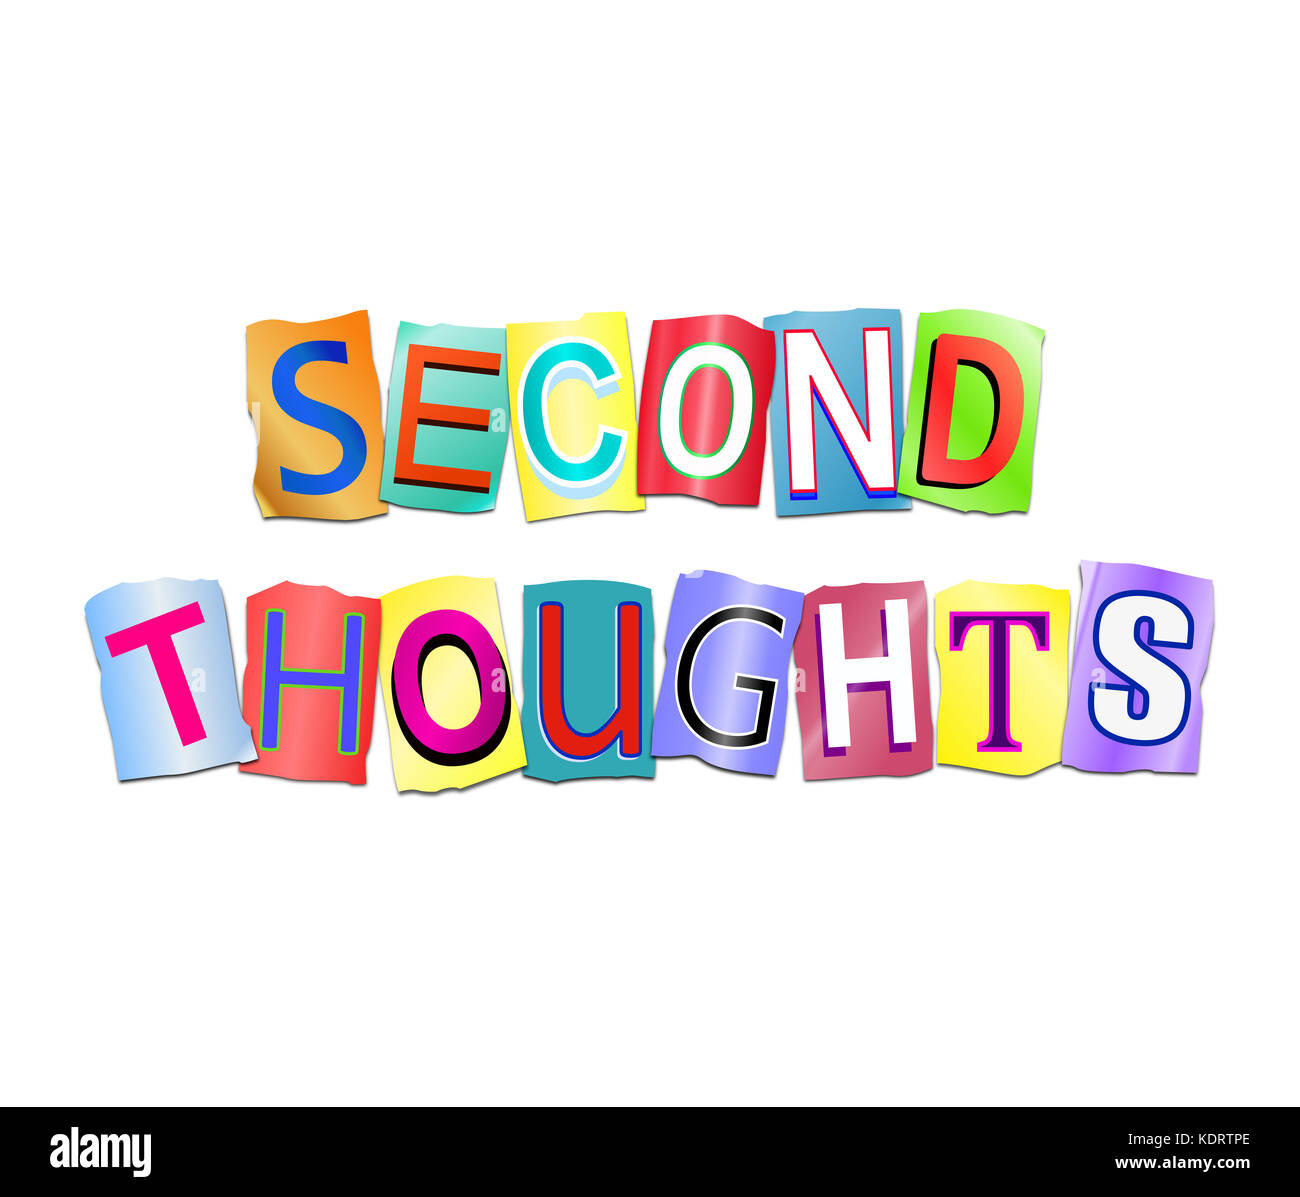 3d Illustration depicting a set of cut out printed letters arranged to form the words second thoughts. - Stock Image